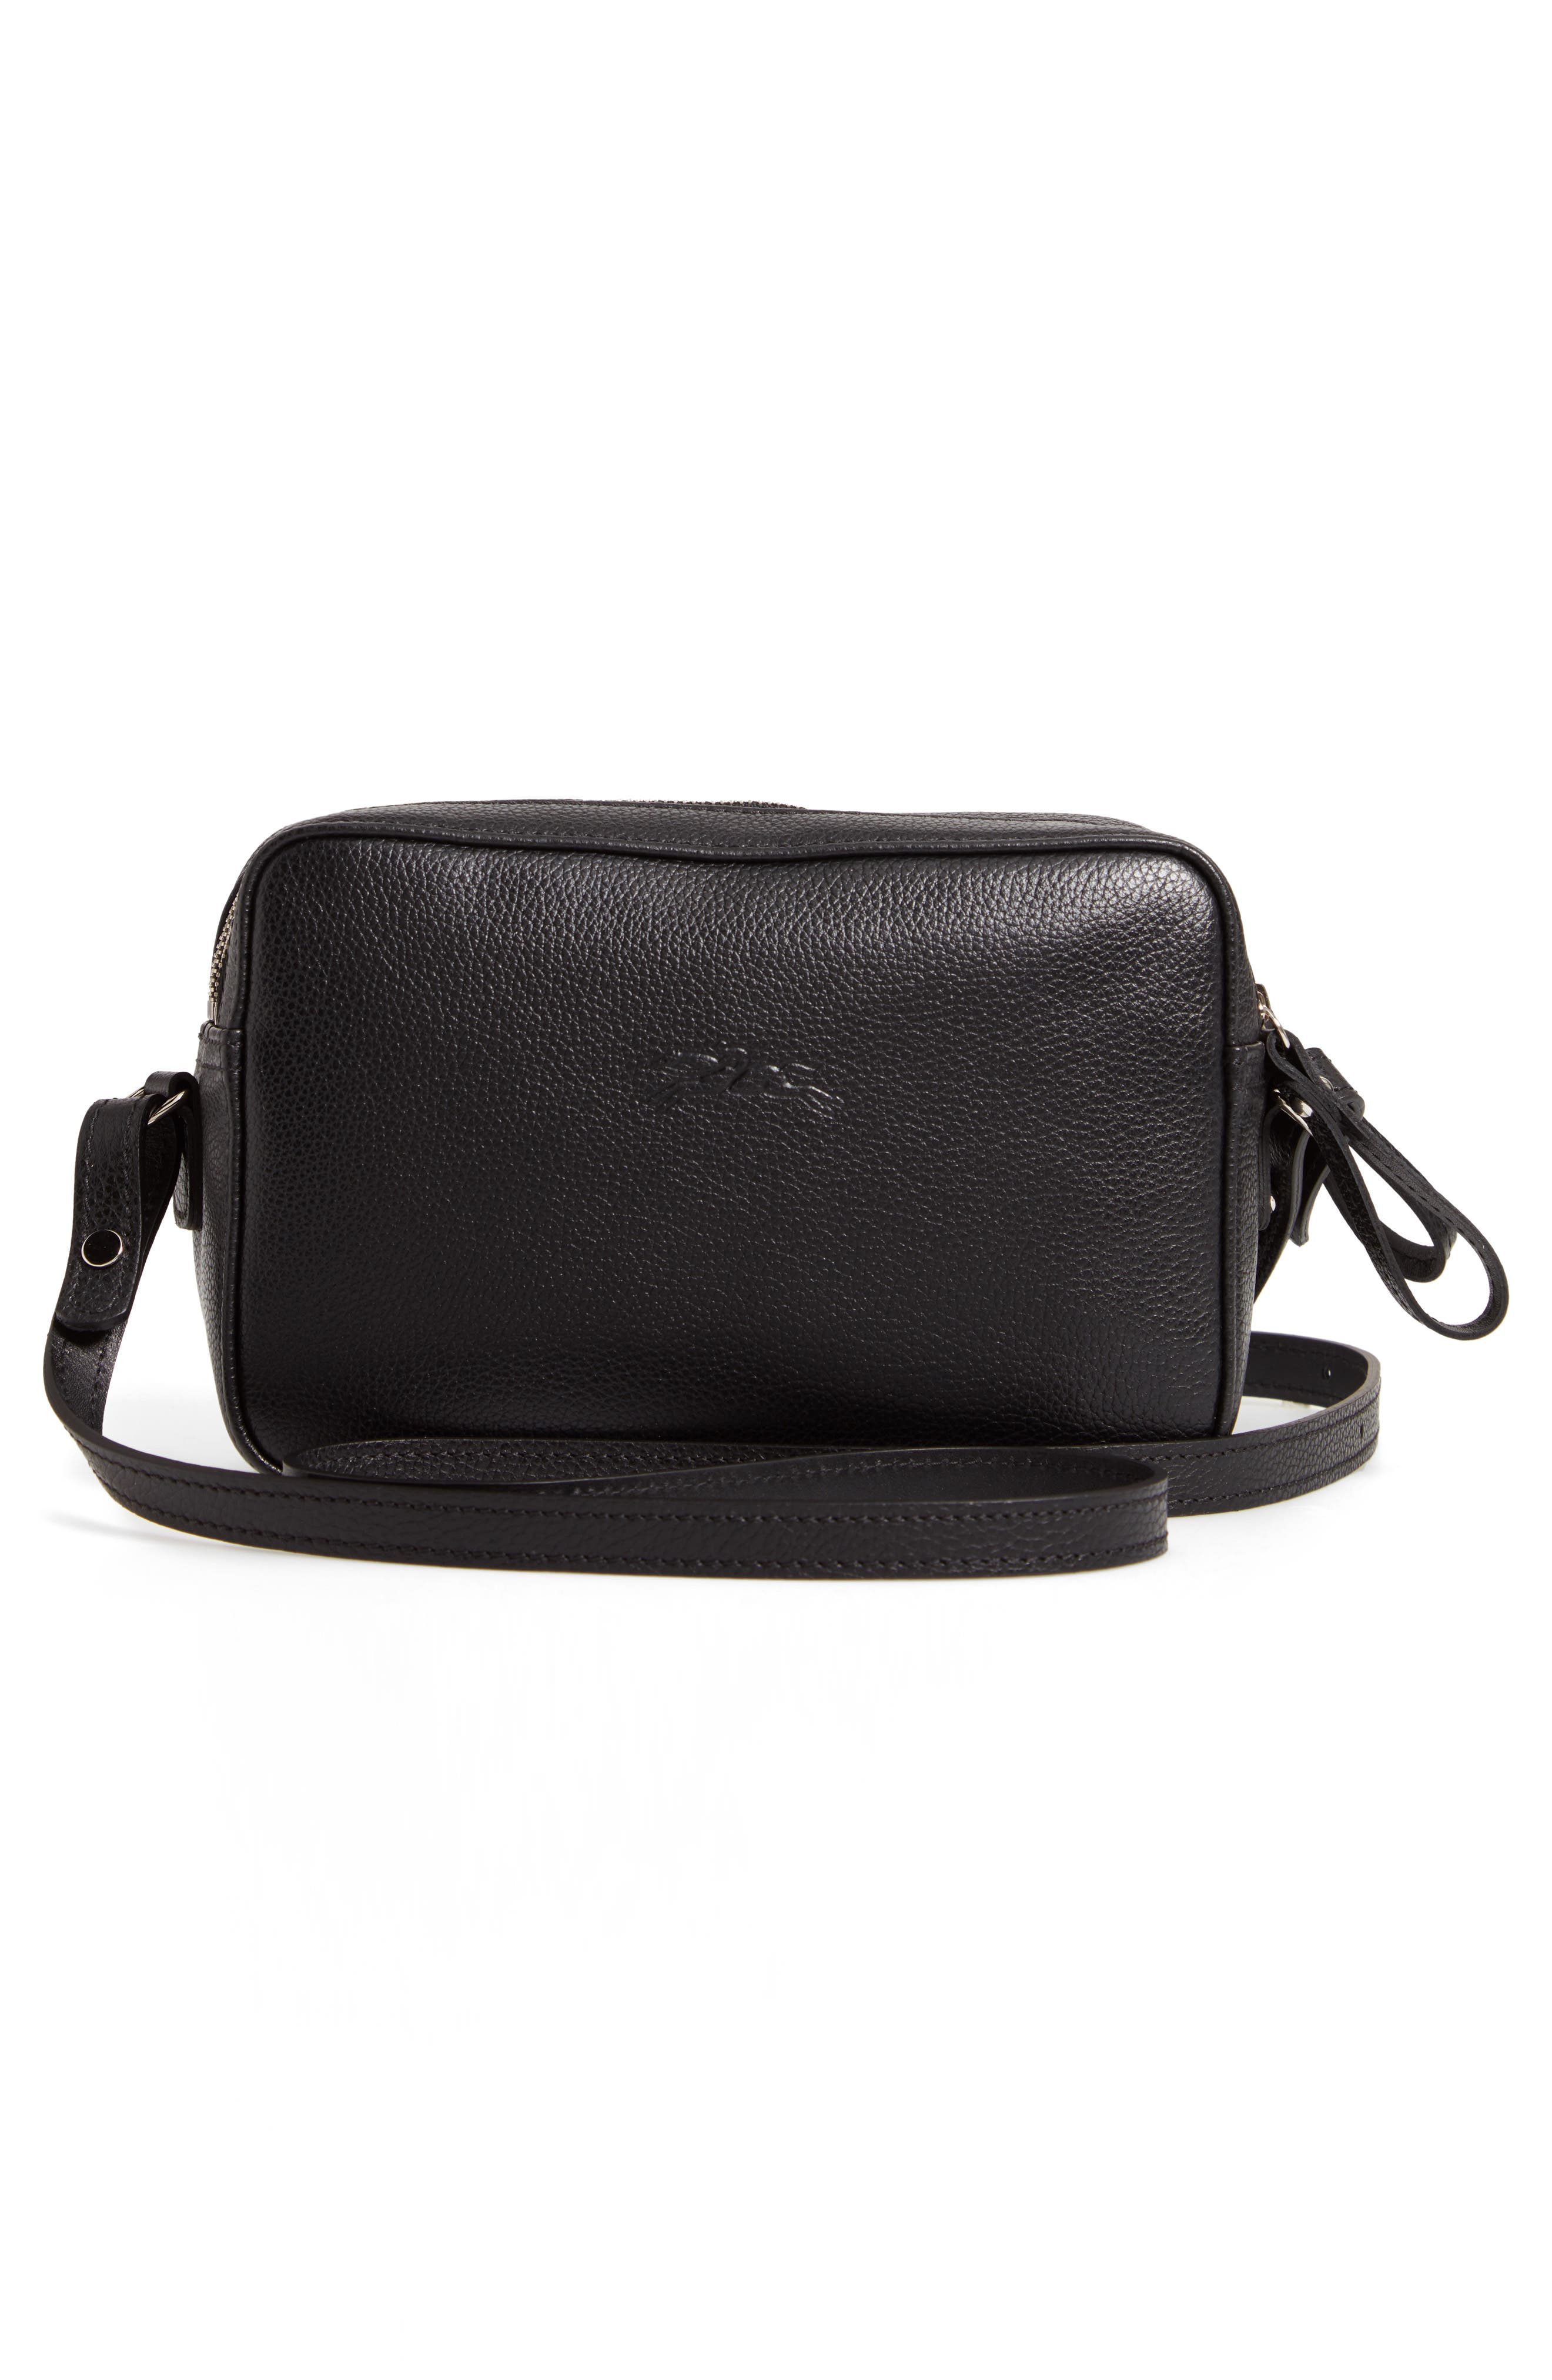 Le Foulonné Leather Camera Bag,                             Alternate thumbnail 3, color,                             BLACK